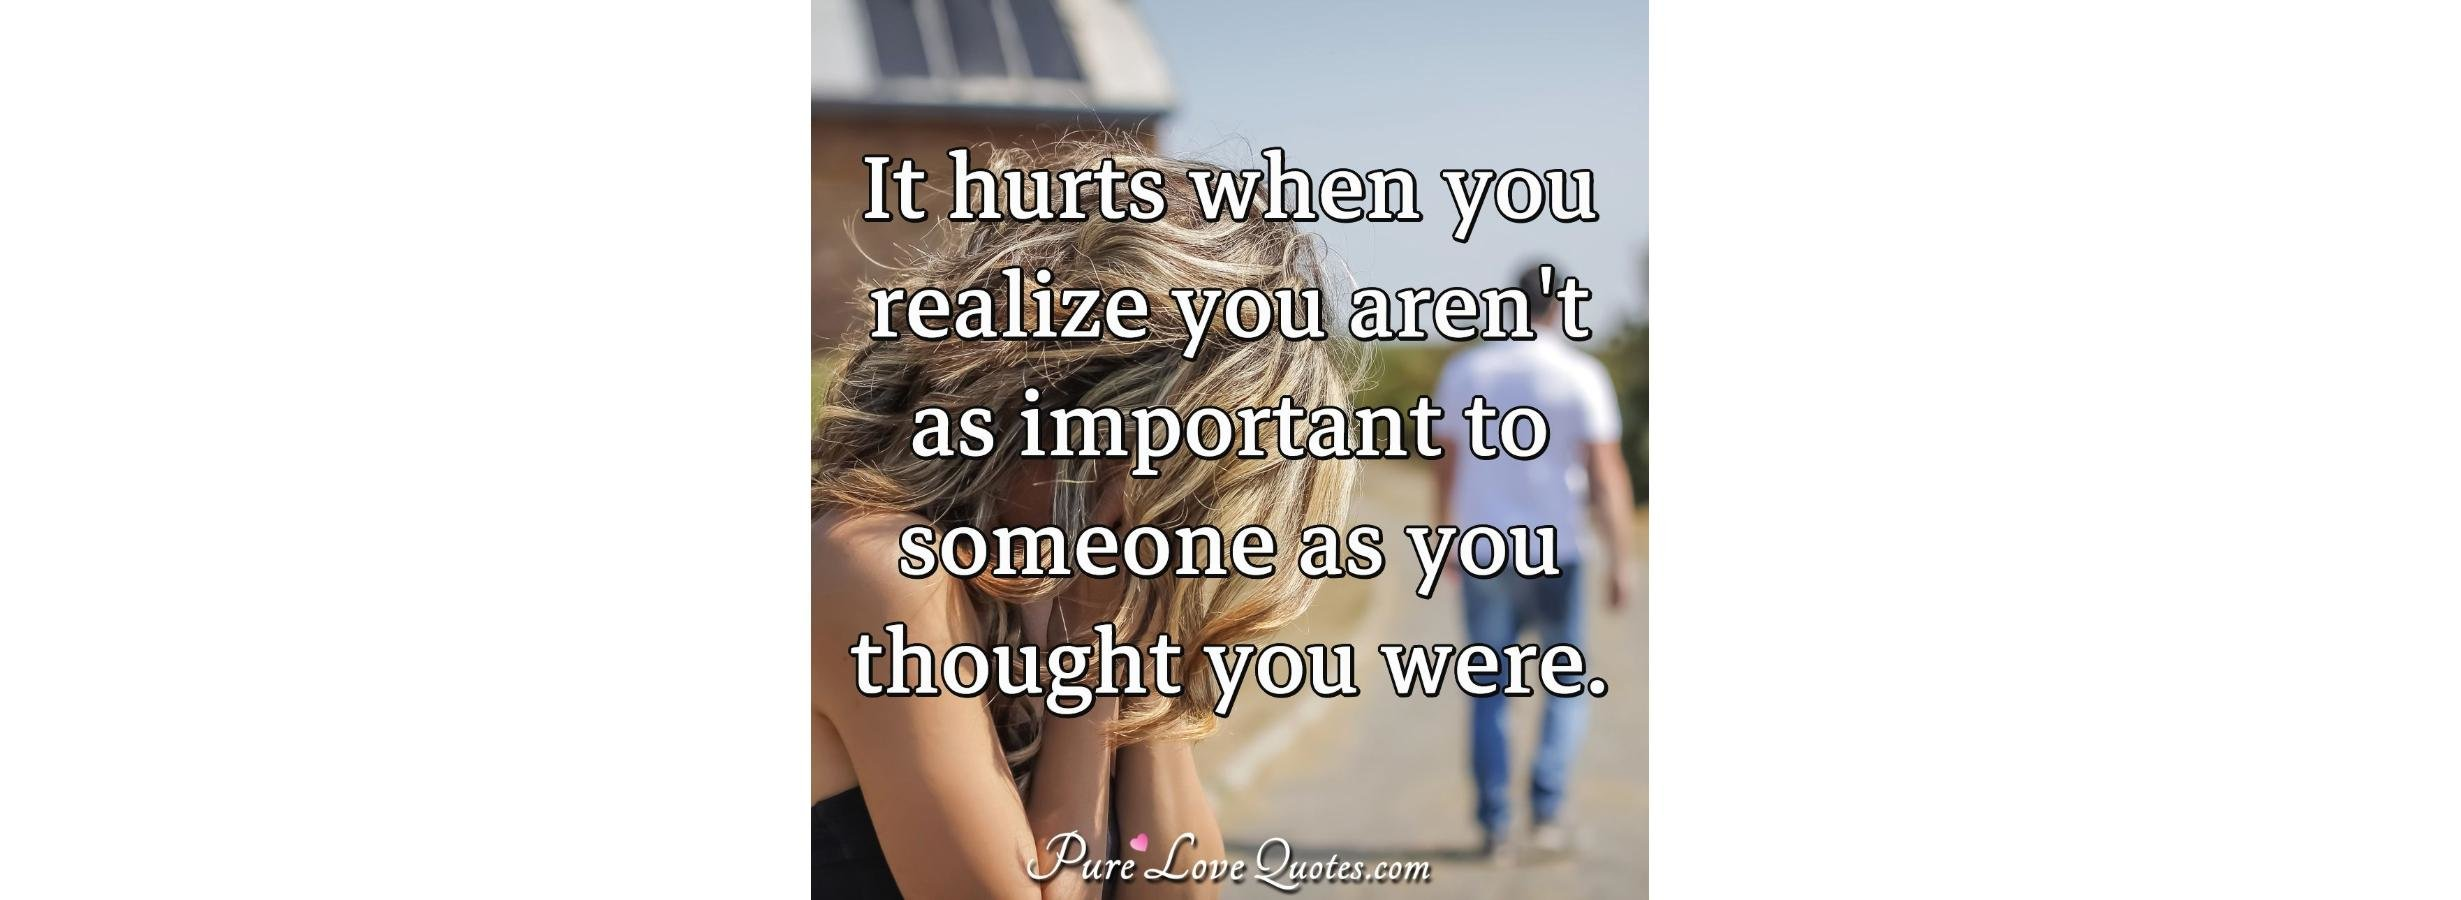 It Hurts When You Realize You Arent As Important To Someone As You